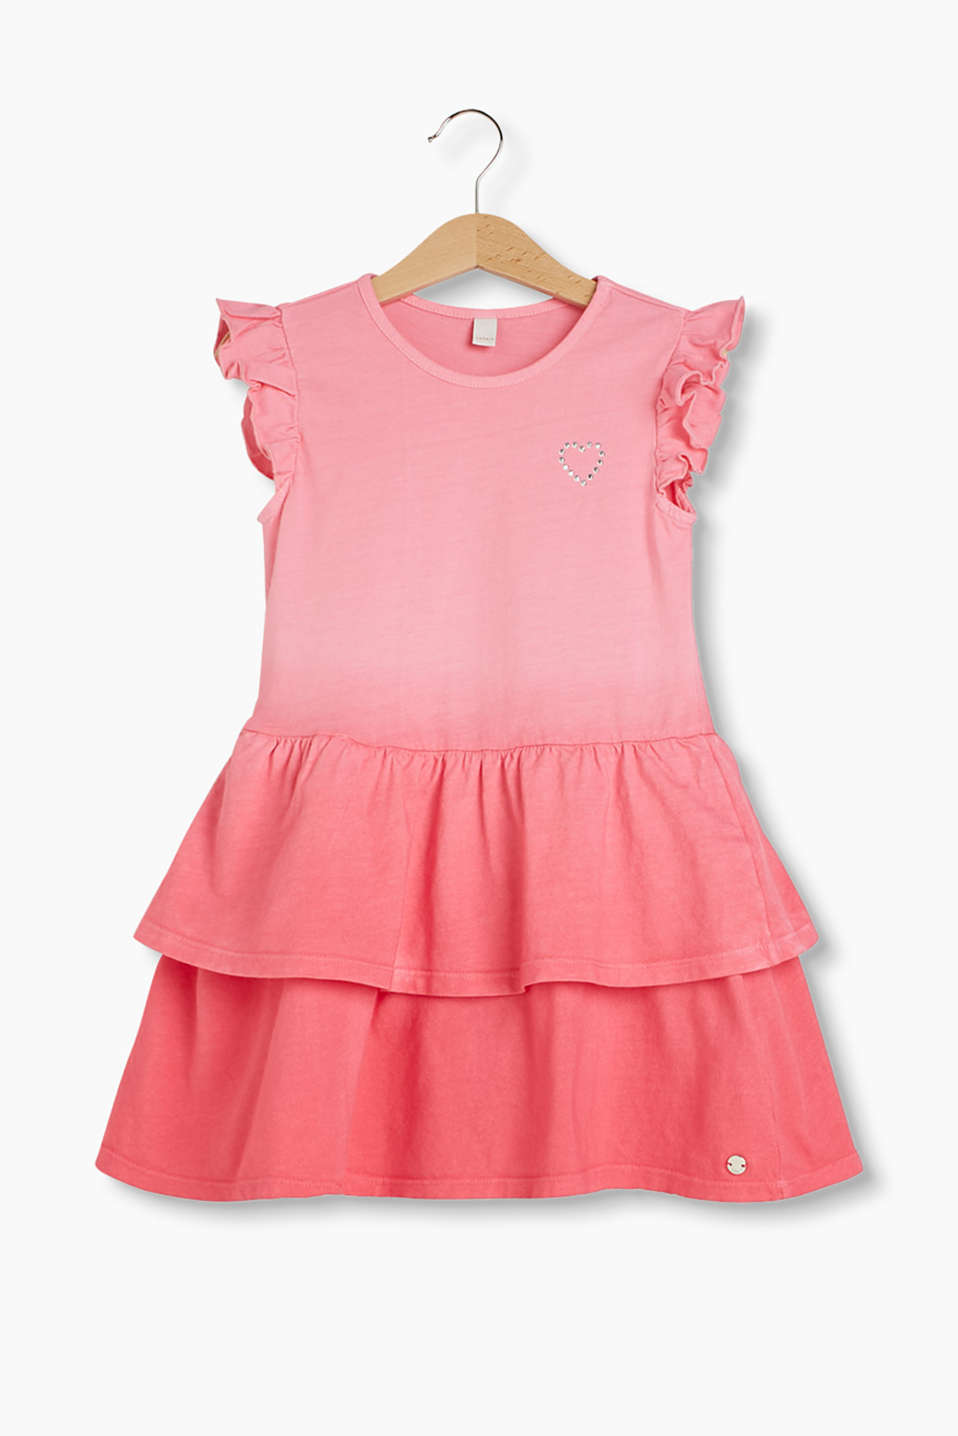 Jersey dress with colour graduation, frilly sleeves and tiered skirt, 100% cotton